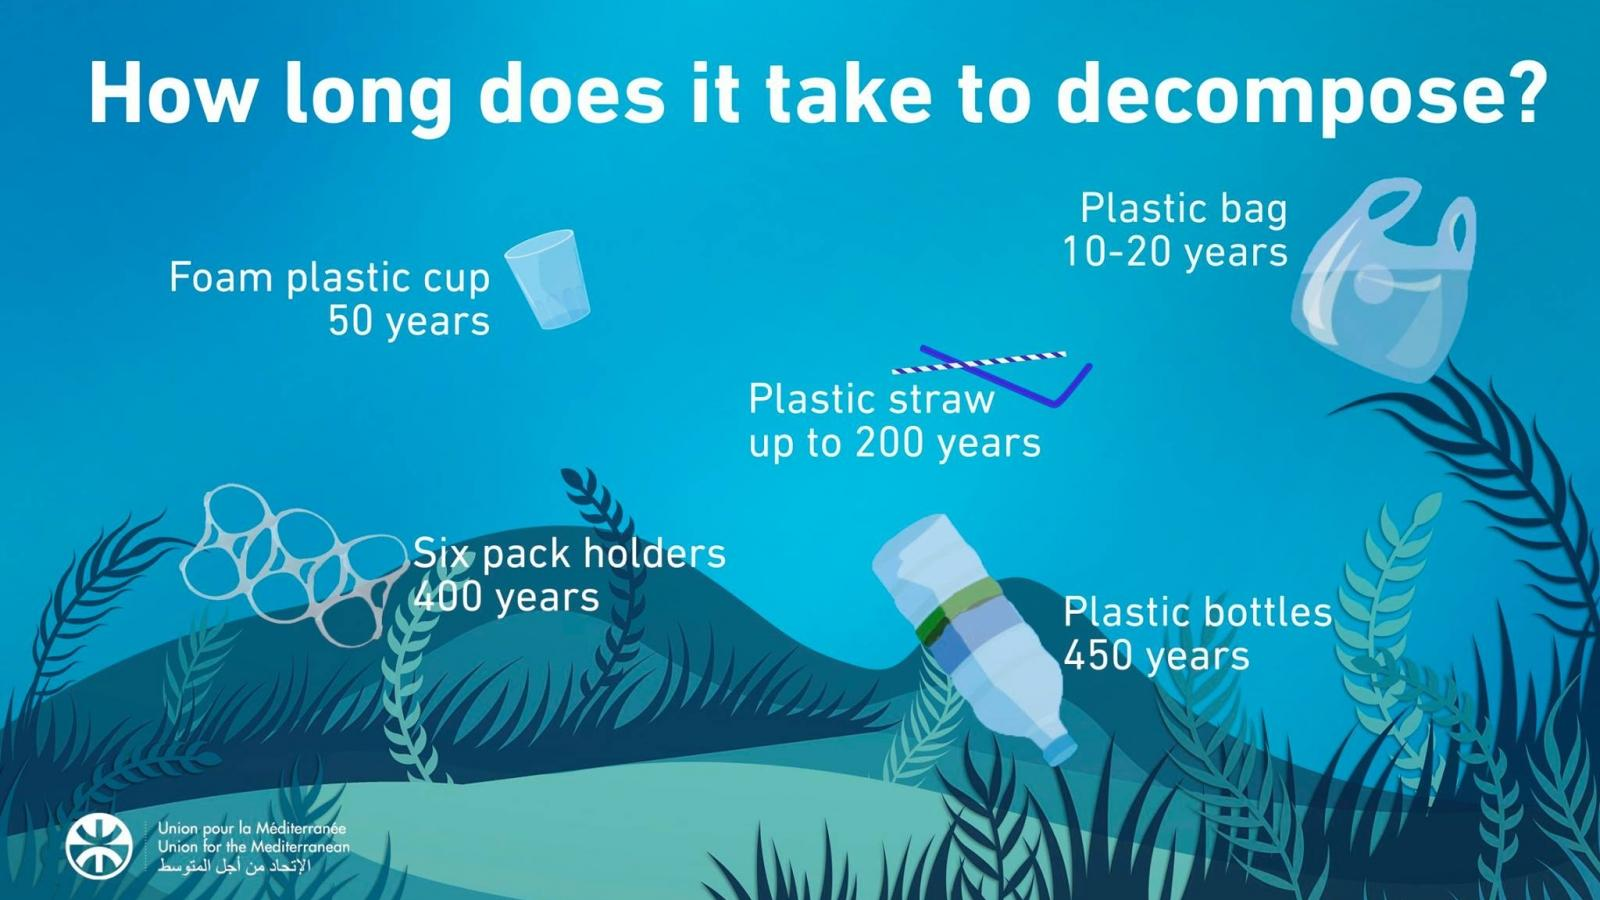 World Environment Day: Let's beat plastic pollution in the